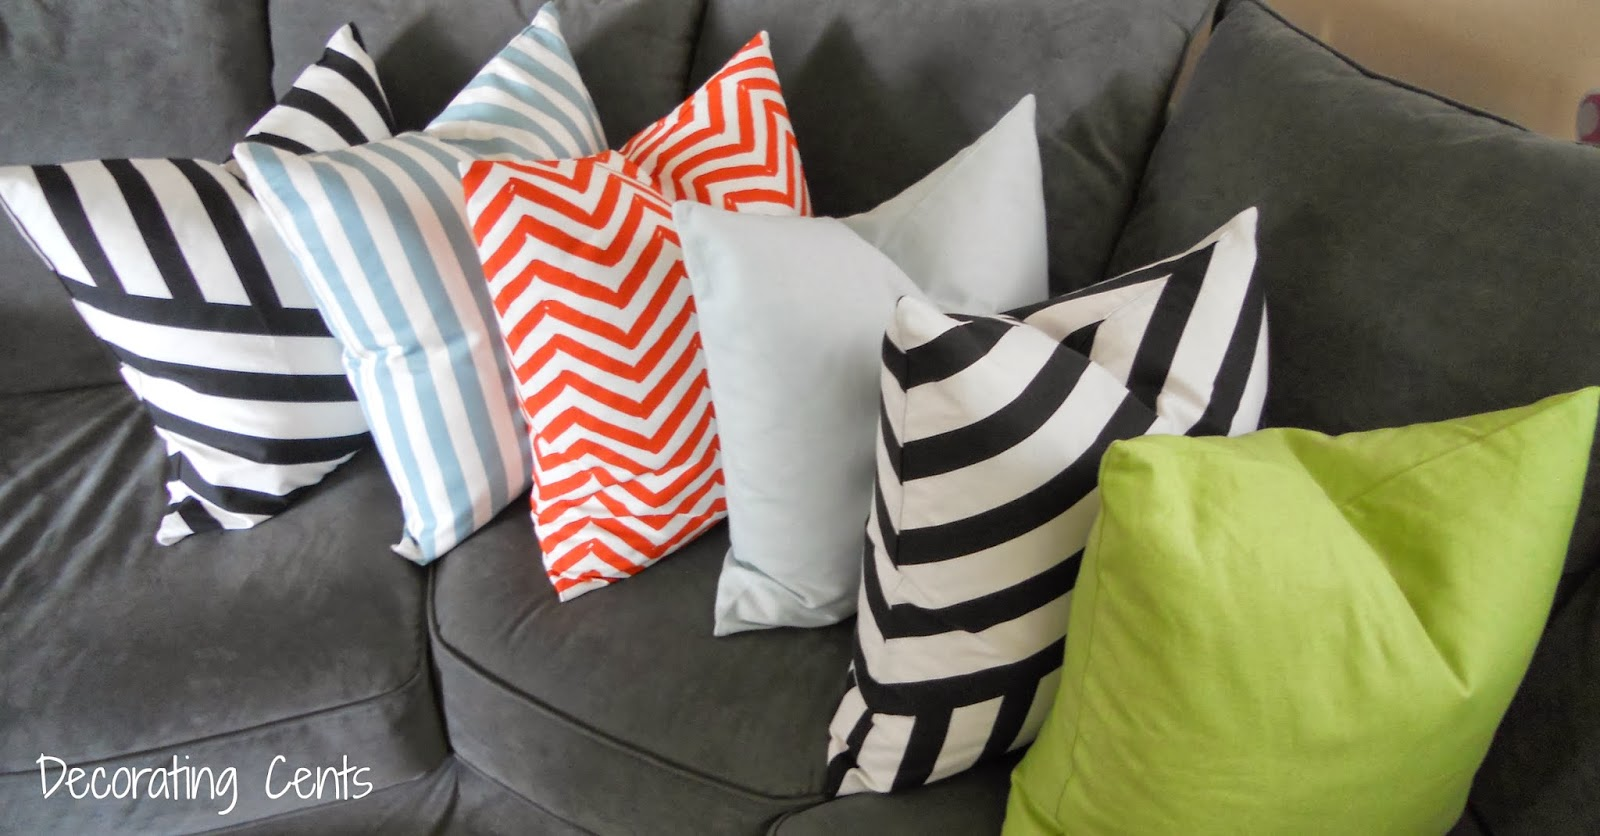 New Hm Pillow Covers